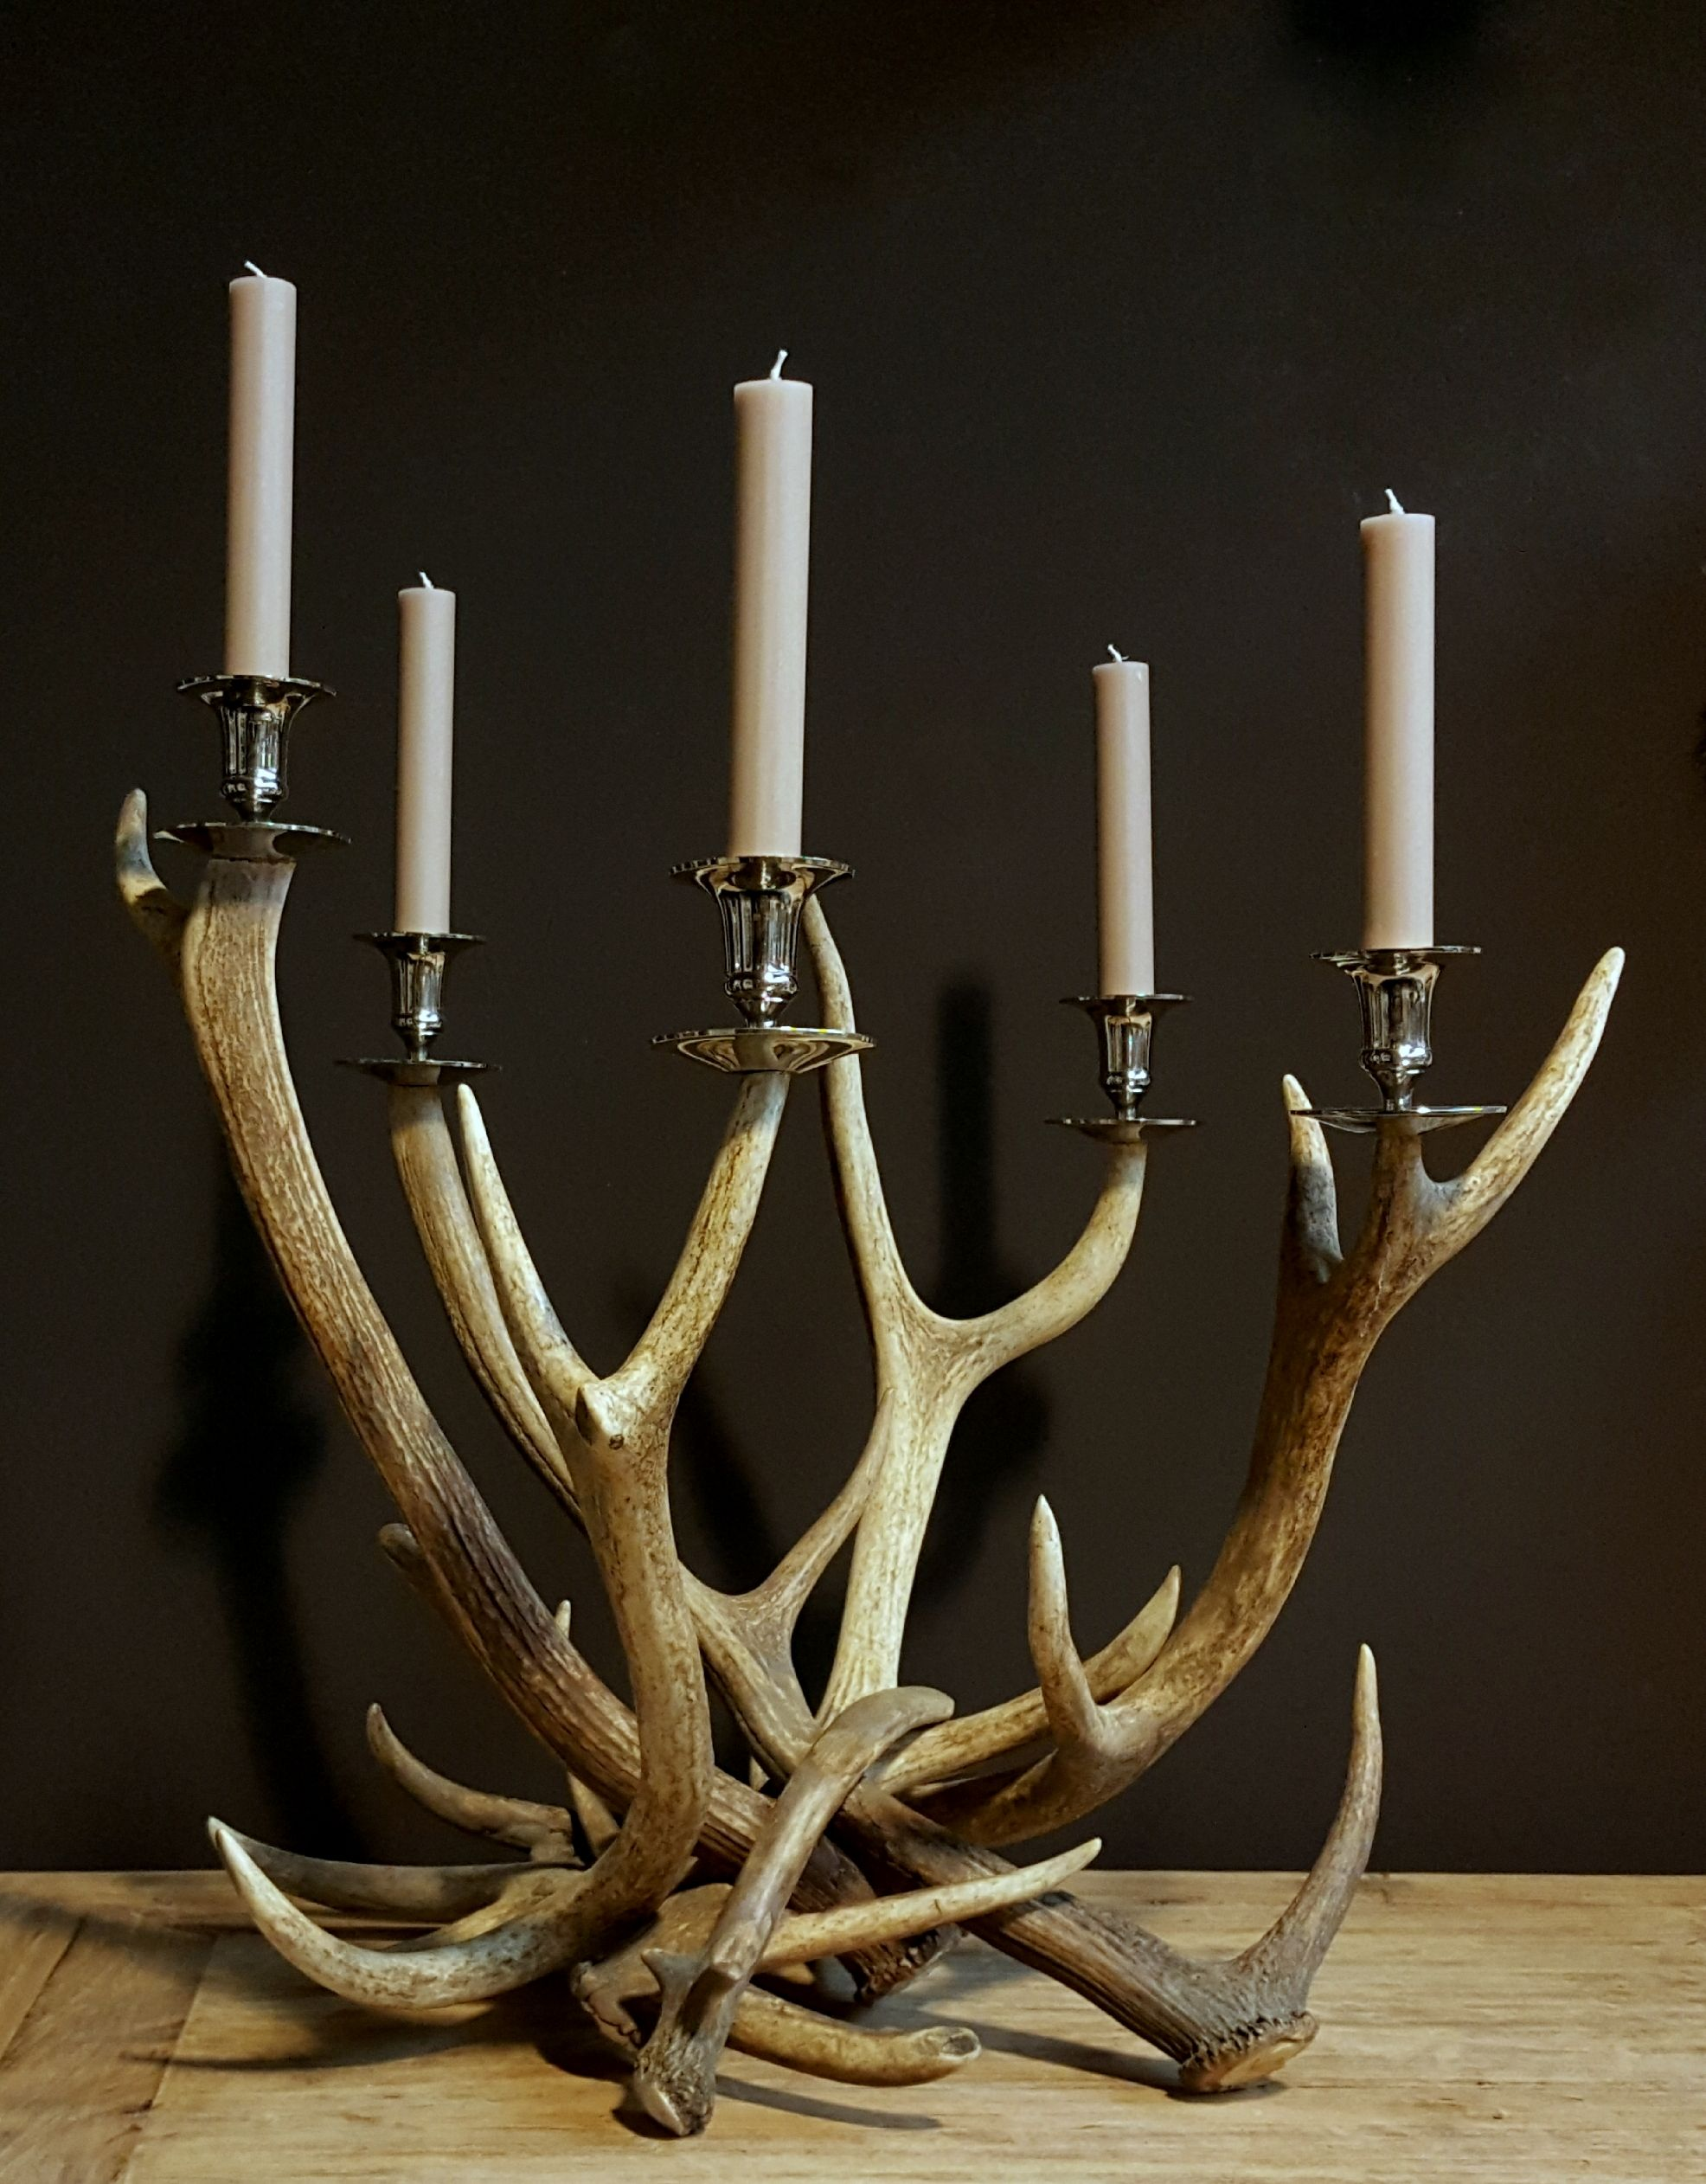 Antler Candle Holder Made Of Deer Antlers Antler Decoration Country Style Antler Lamps And Furnitures Antler Home Antlers Decor Antler Candle Antler Lamp